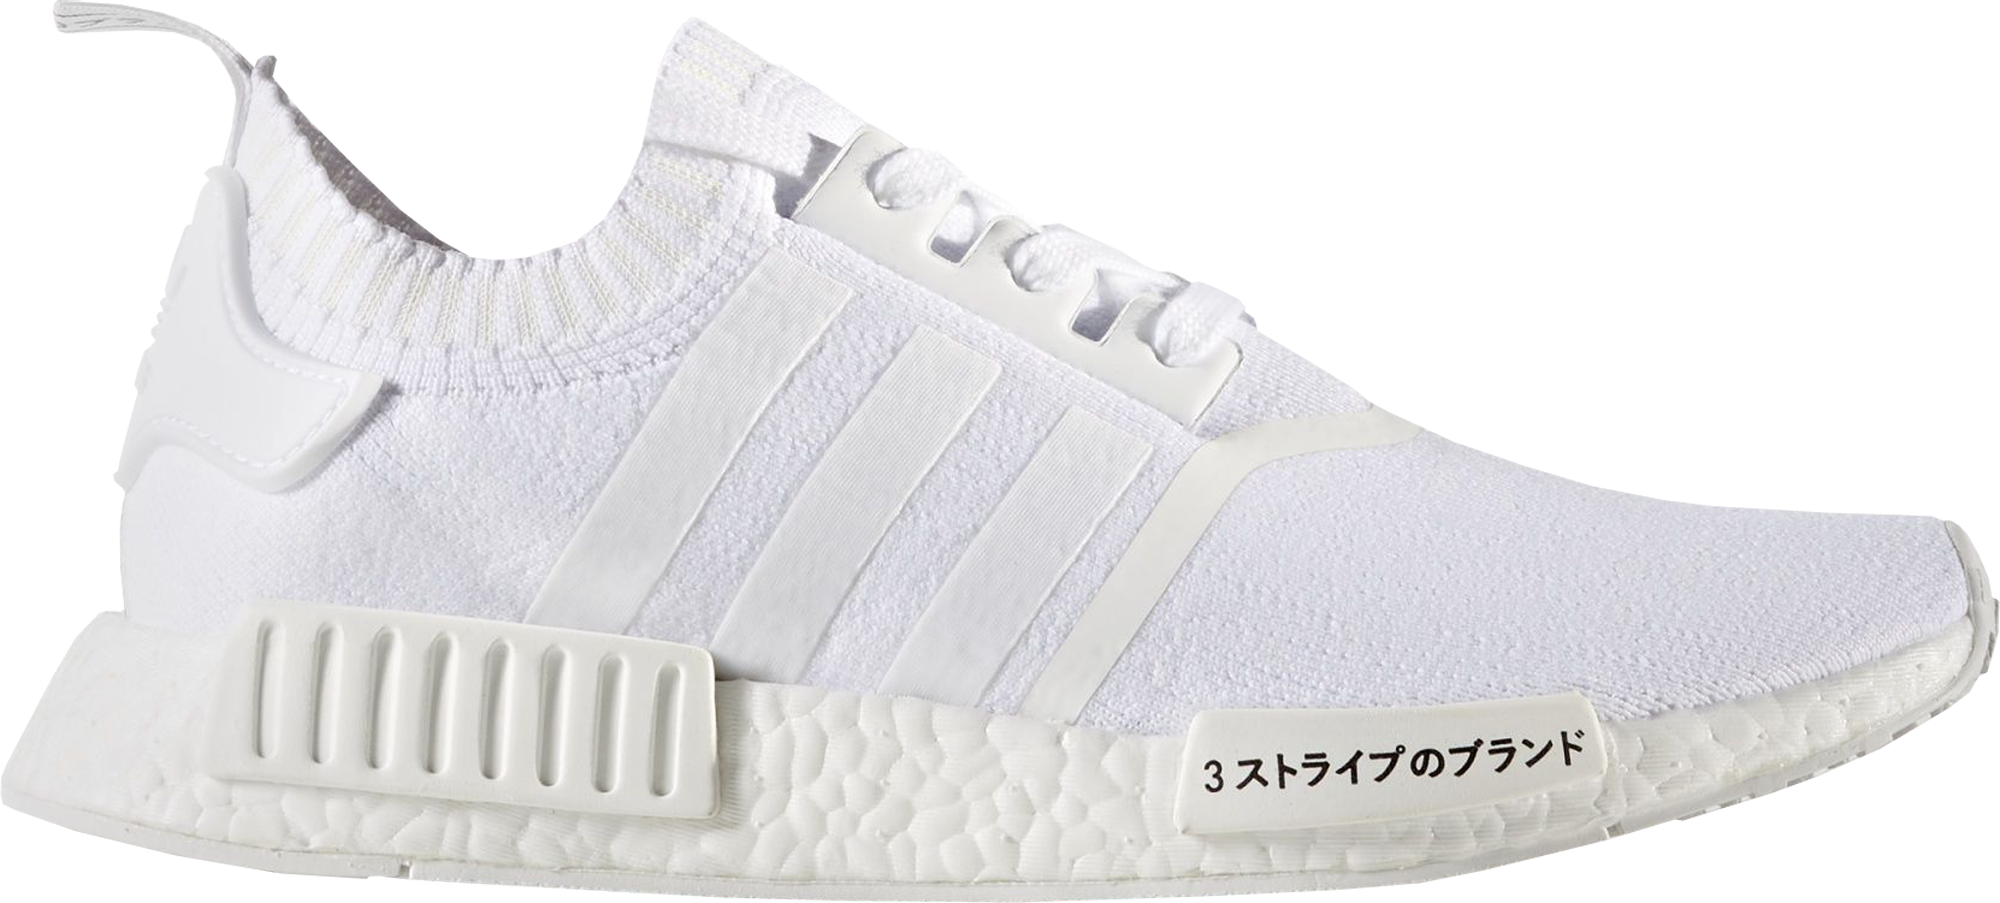 adidas NMD R1 Sneaker In And White